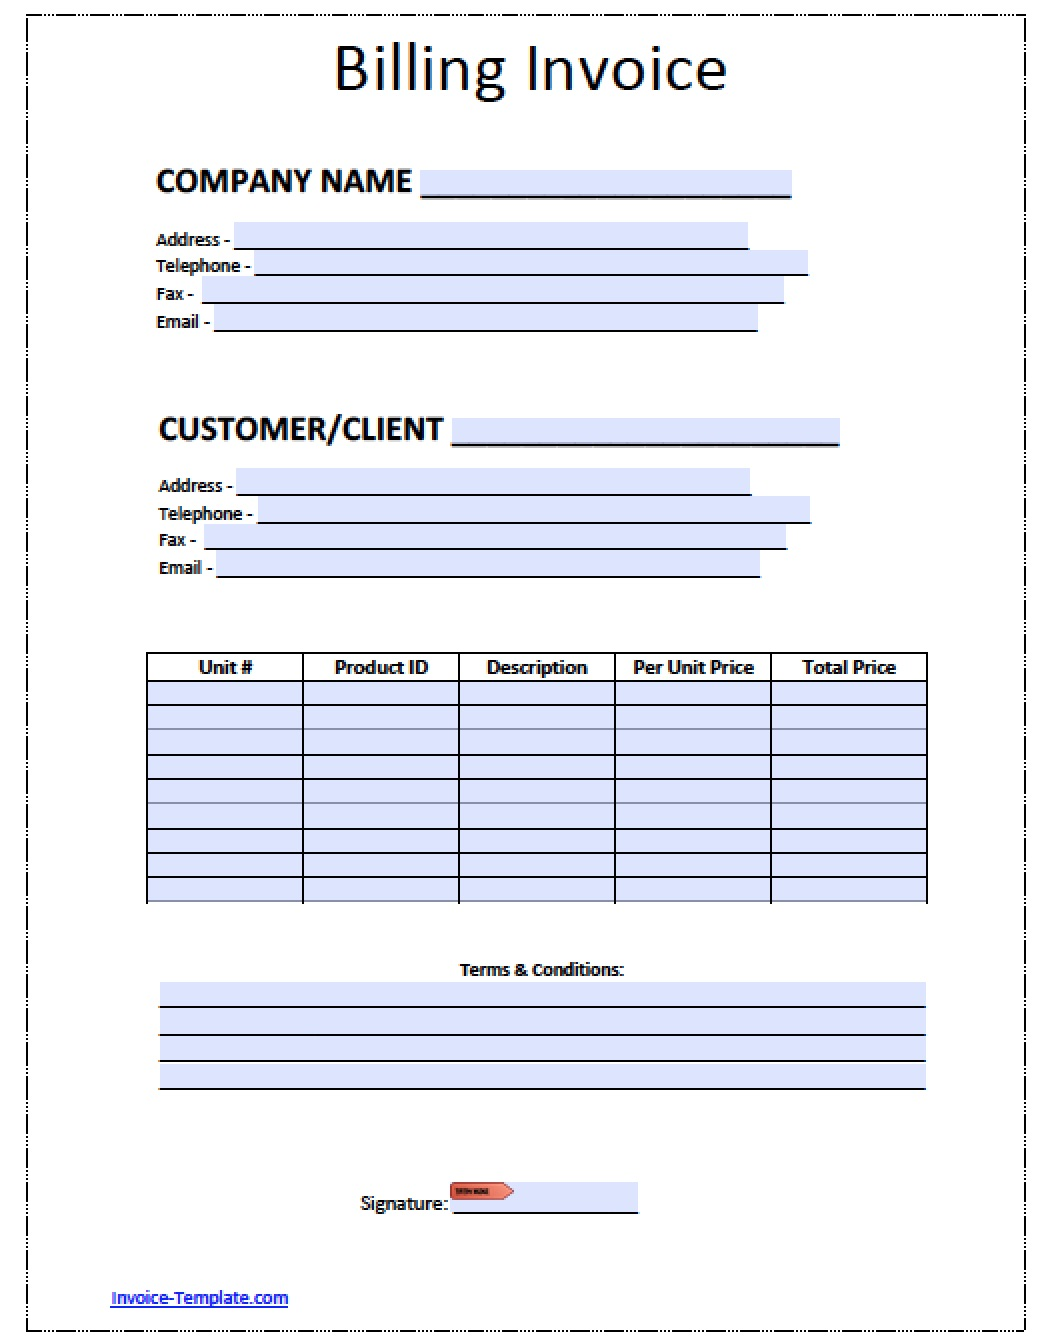 billing invoice template word pdf - Billing Invoice Template